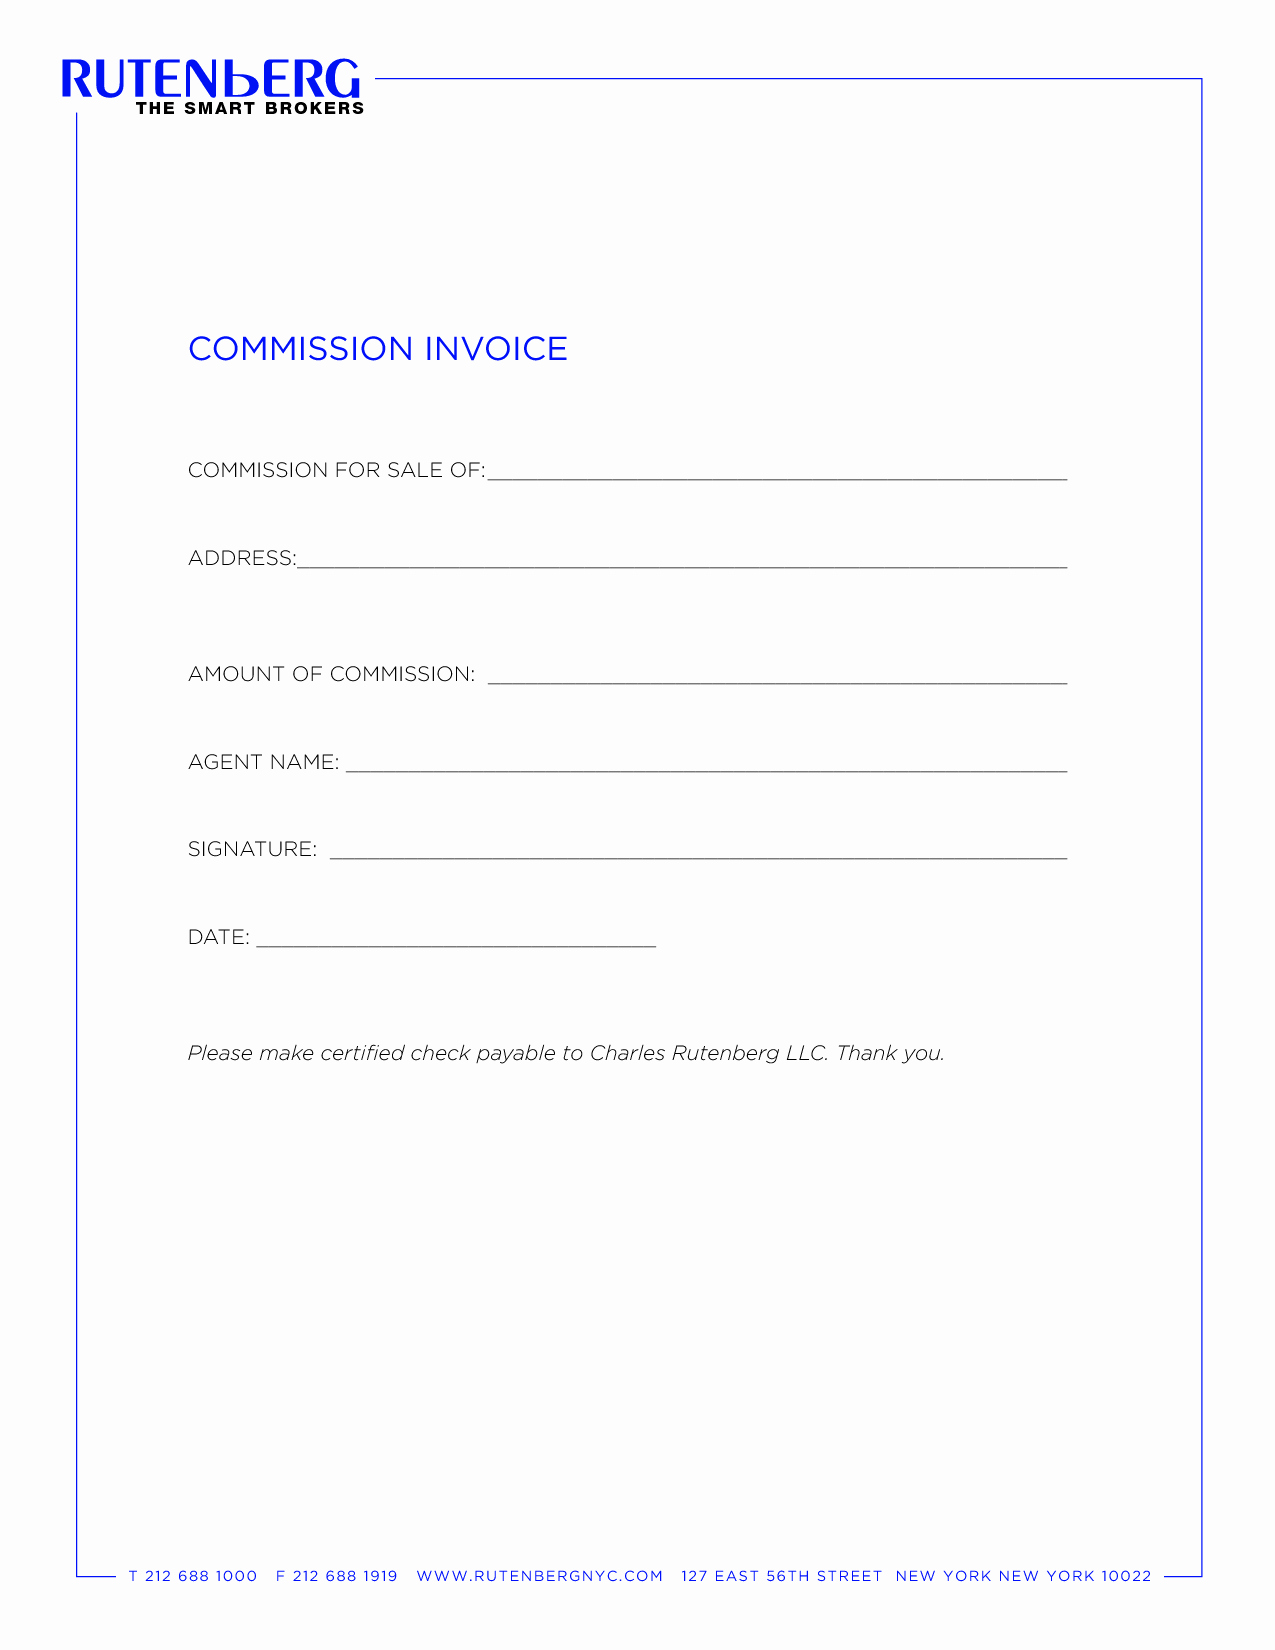 Real Estate Commission Invoice Luxury Elegant Invoice Template